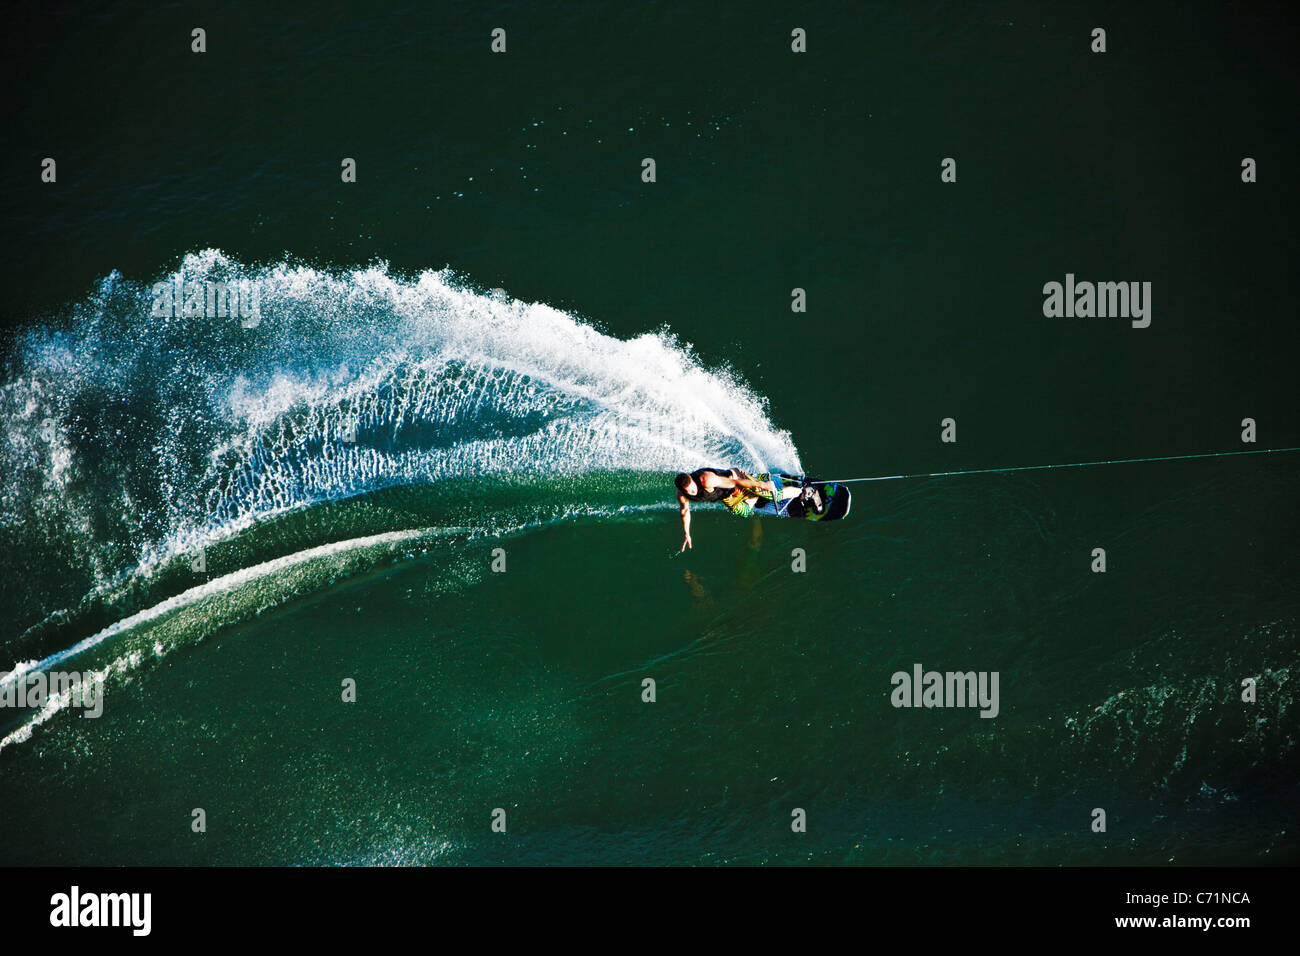 A athletic wakeboarder carves and slashes on a calm day in Idaho. Shot from above. - Stock Image